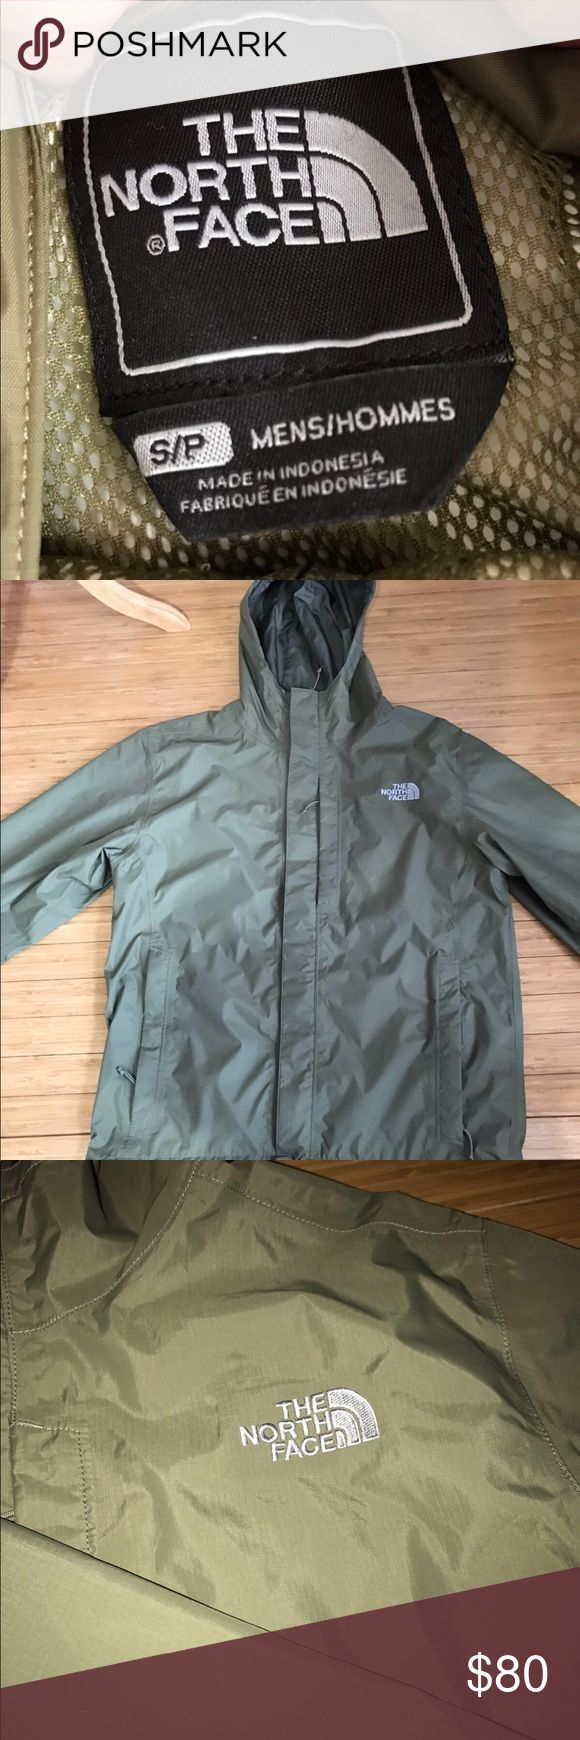 North Face Men's Raincoat Men's North Face Rain Coat / Retail $120 / worn 2 times / 10/10 perfect condition / just like new / purchased a few years ago (just didn't fit right for me) / size Small in men's / Olive Green The North Face Jackets & Coats Raincoats